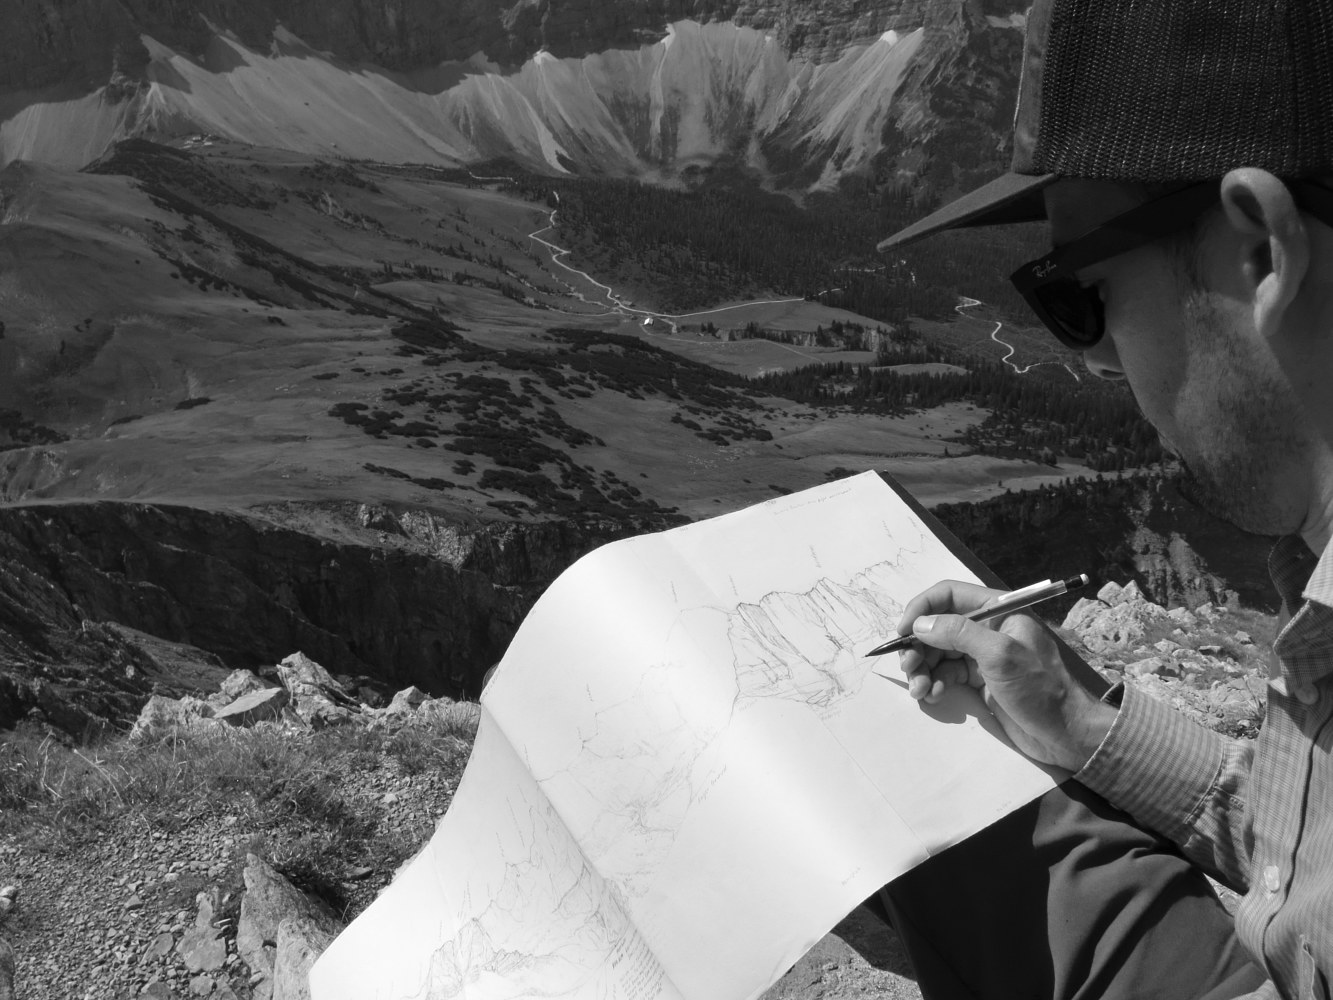 Drawing at Steinfalke, Karwendel by Matthew Rangel